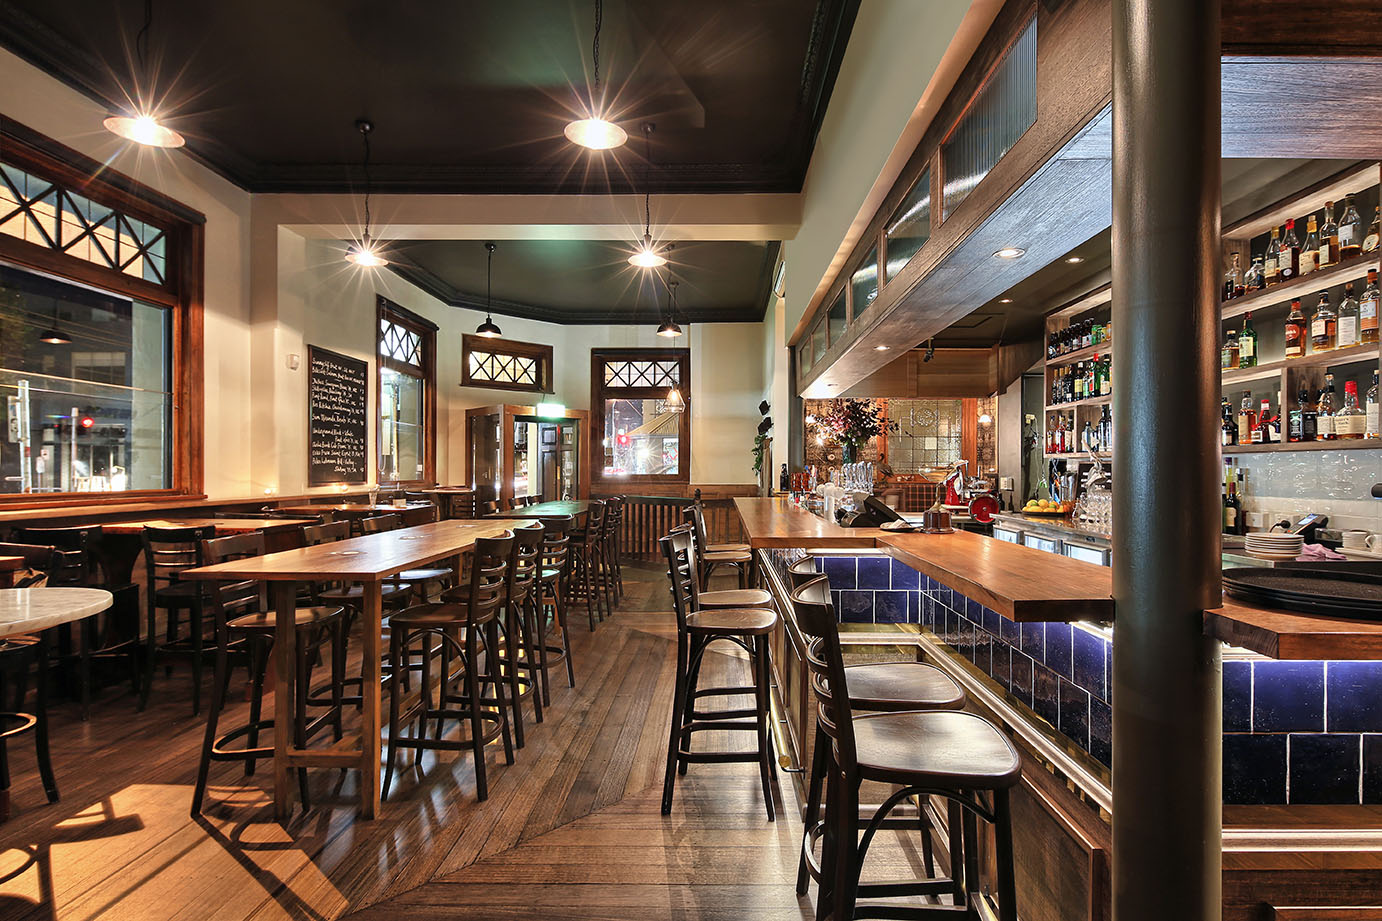 Fitzroy Town Hall Hotel - interior design by Studio Y.